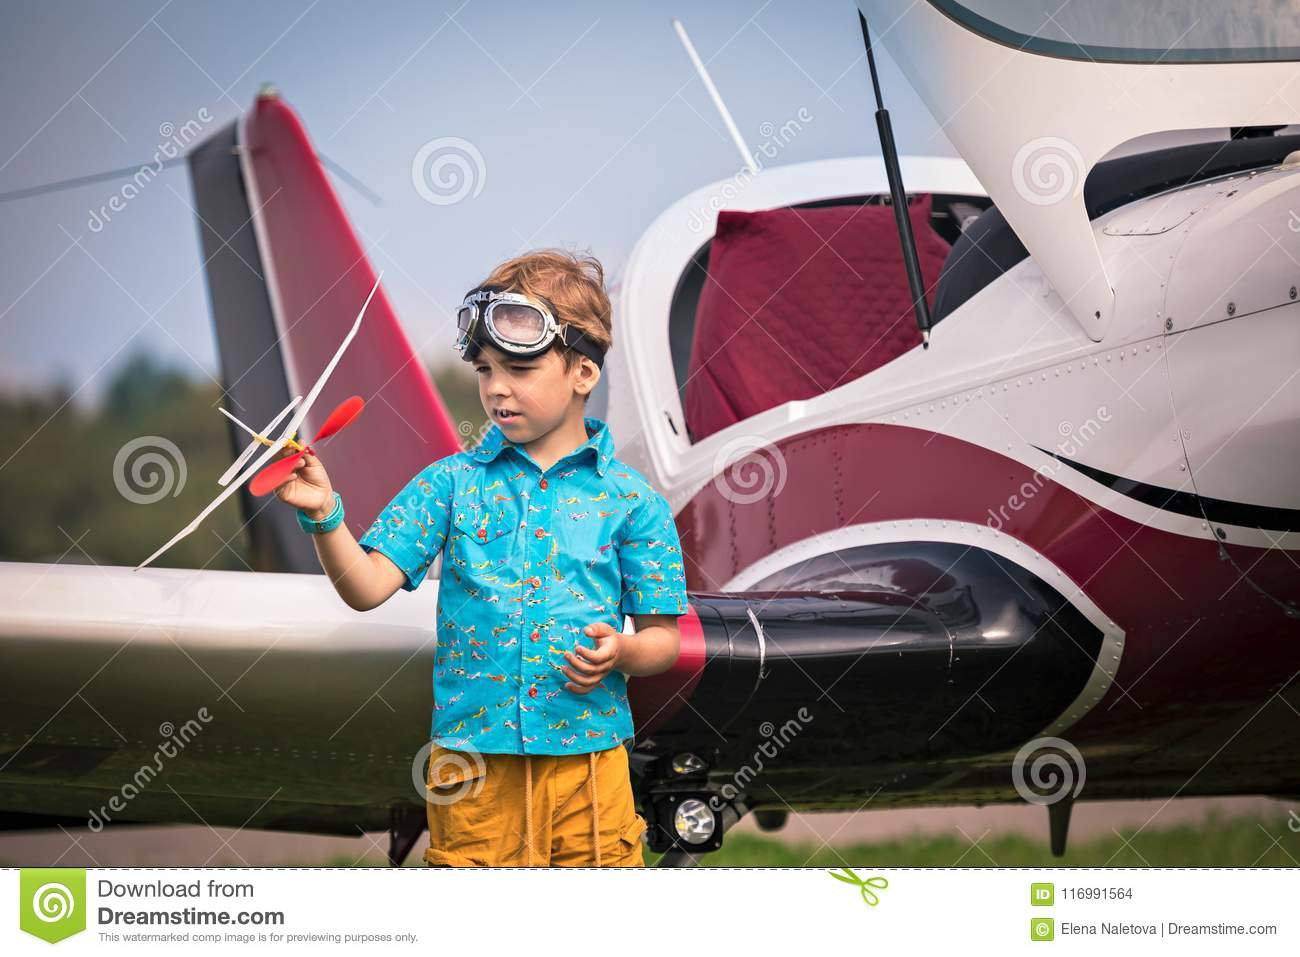 Caucasian boy in yellow shorts, a blue shirt and in aviation points holds the toy plane in hand and h